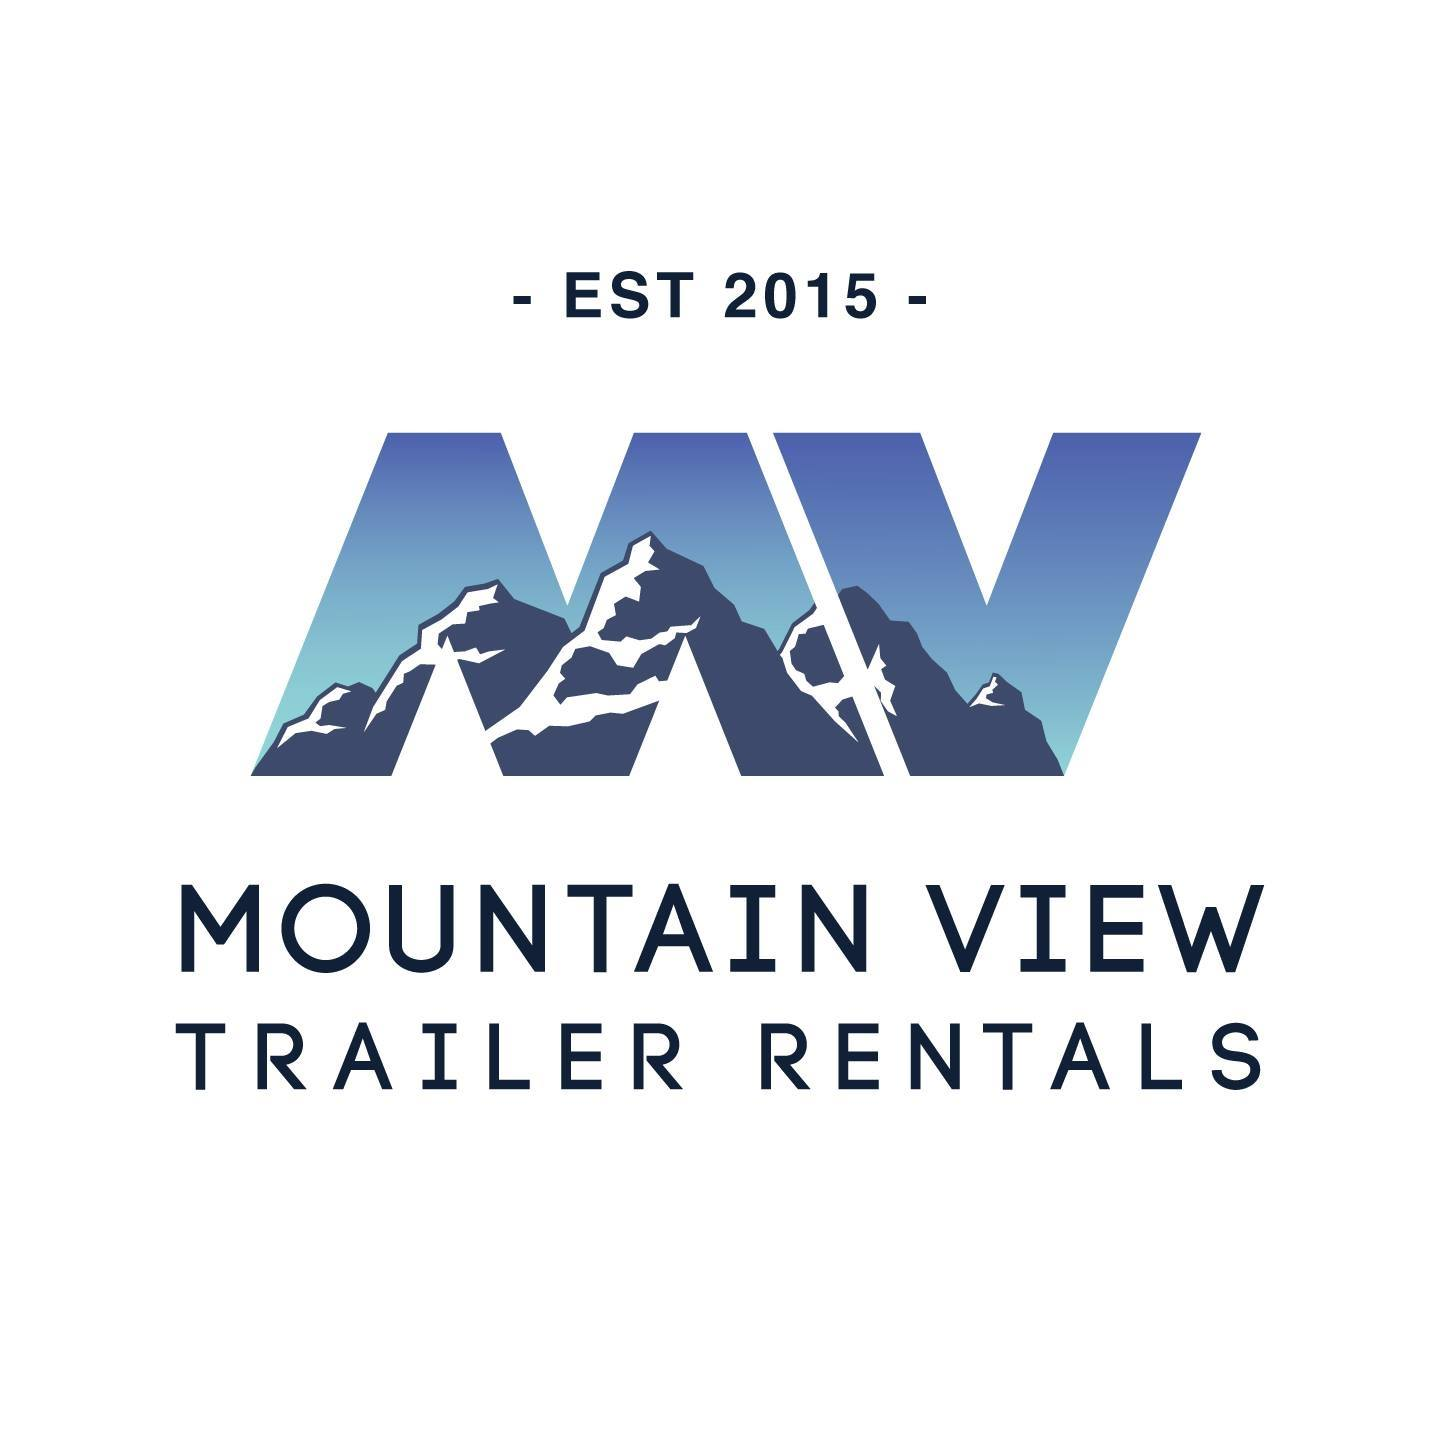 Mountain View Trailer Rentals | MVTR